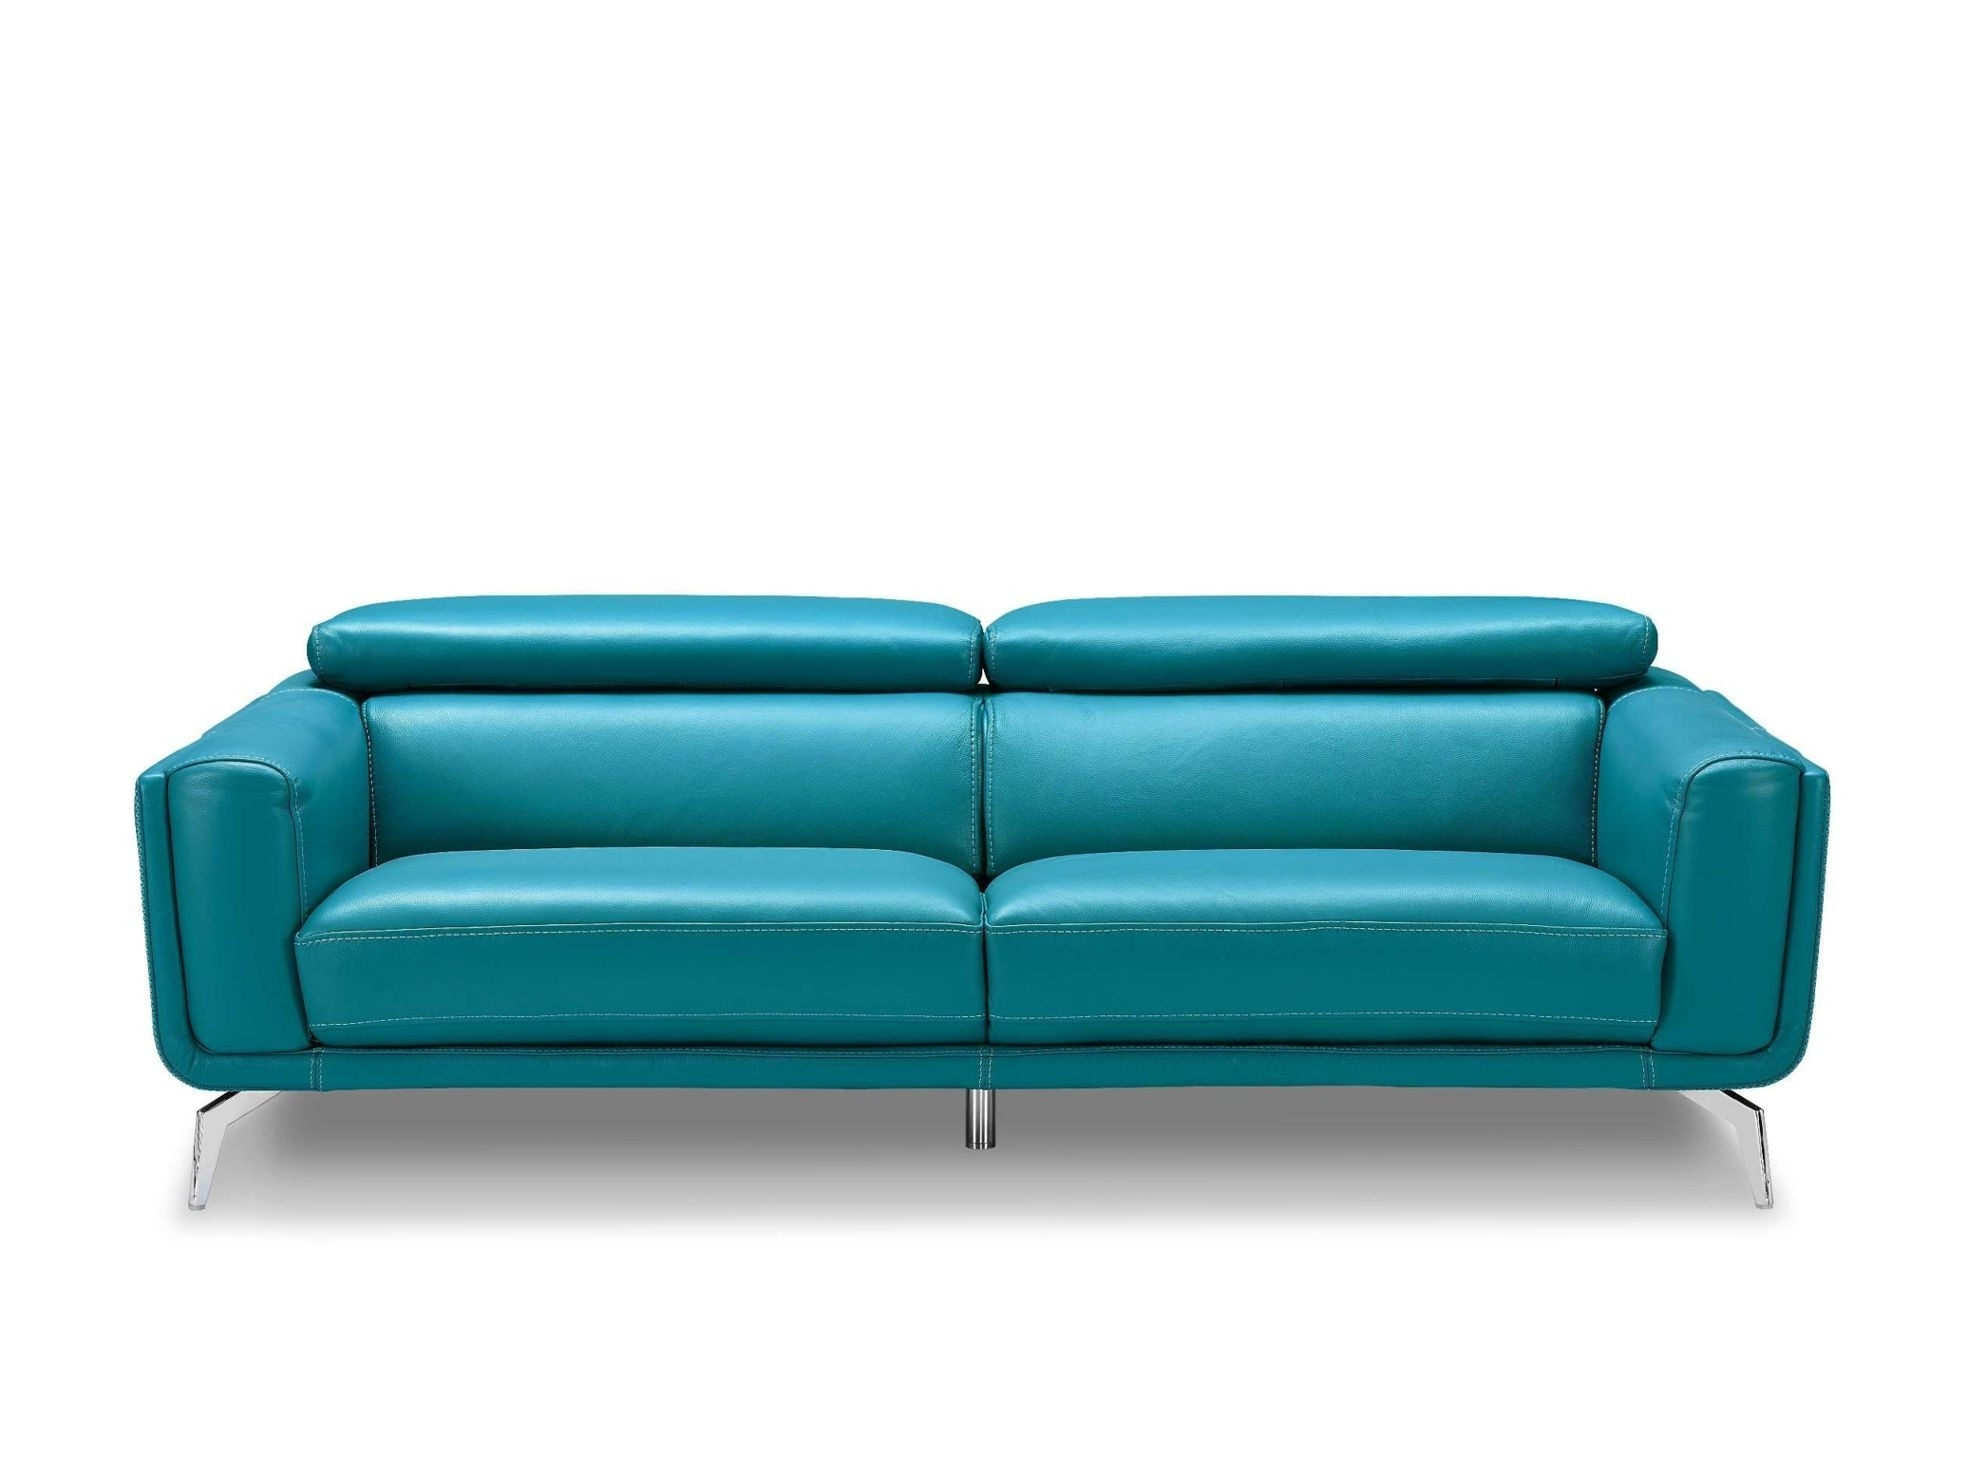 Contemporary Sofa Chairs For Widely Used Contemporary Sofas And Chairs Tags : Modern Sofa Recliner Modern (View 5 of 15)